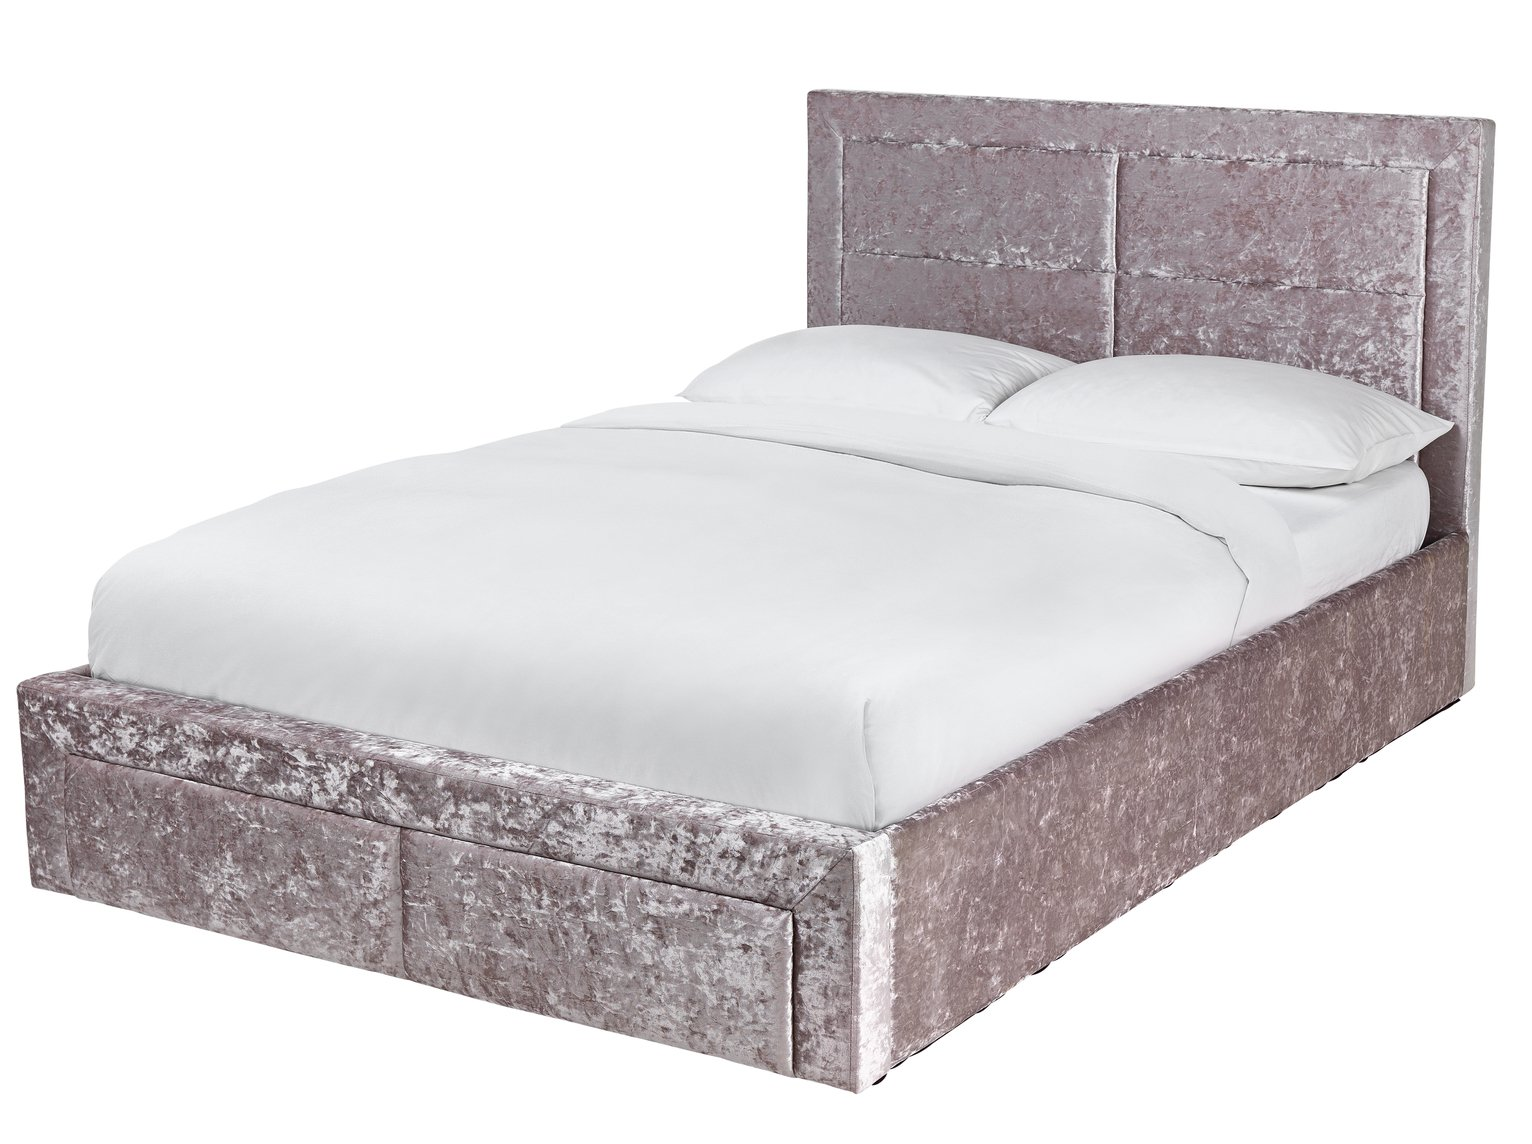 Argos Home Kourtney End Open Ottoman Sml Double Bed - Silver